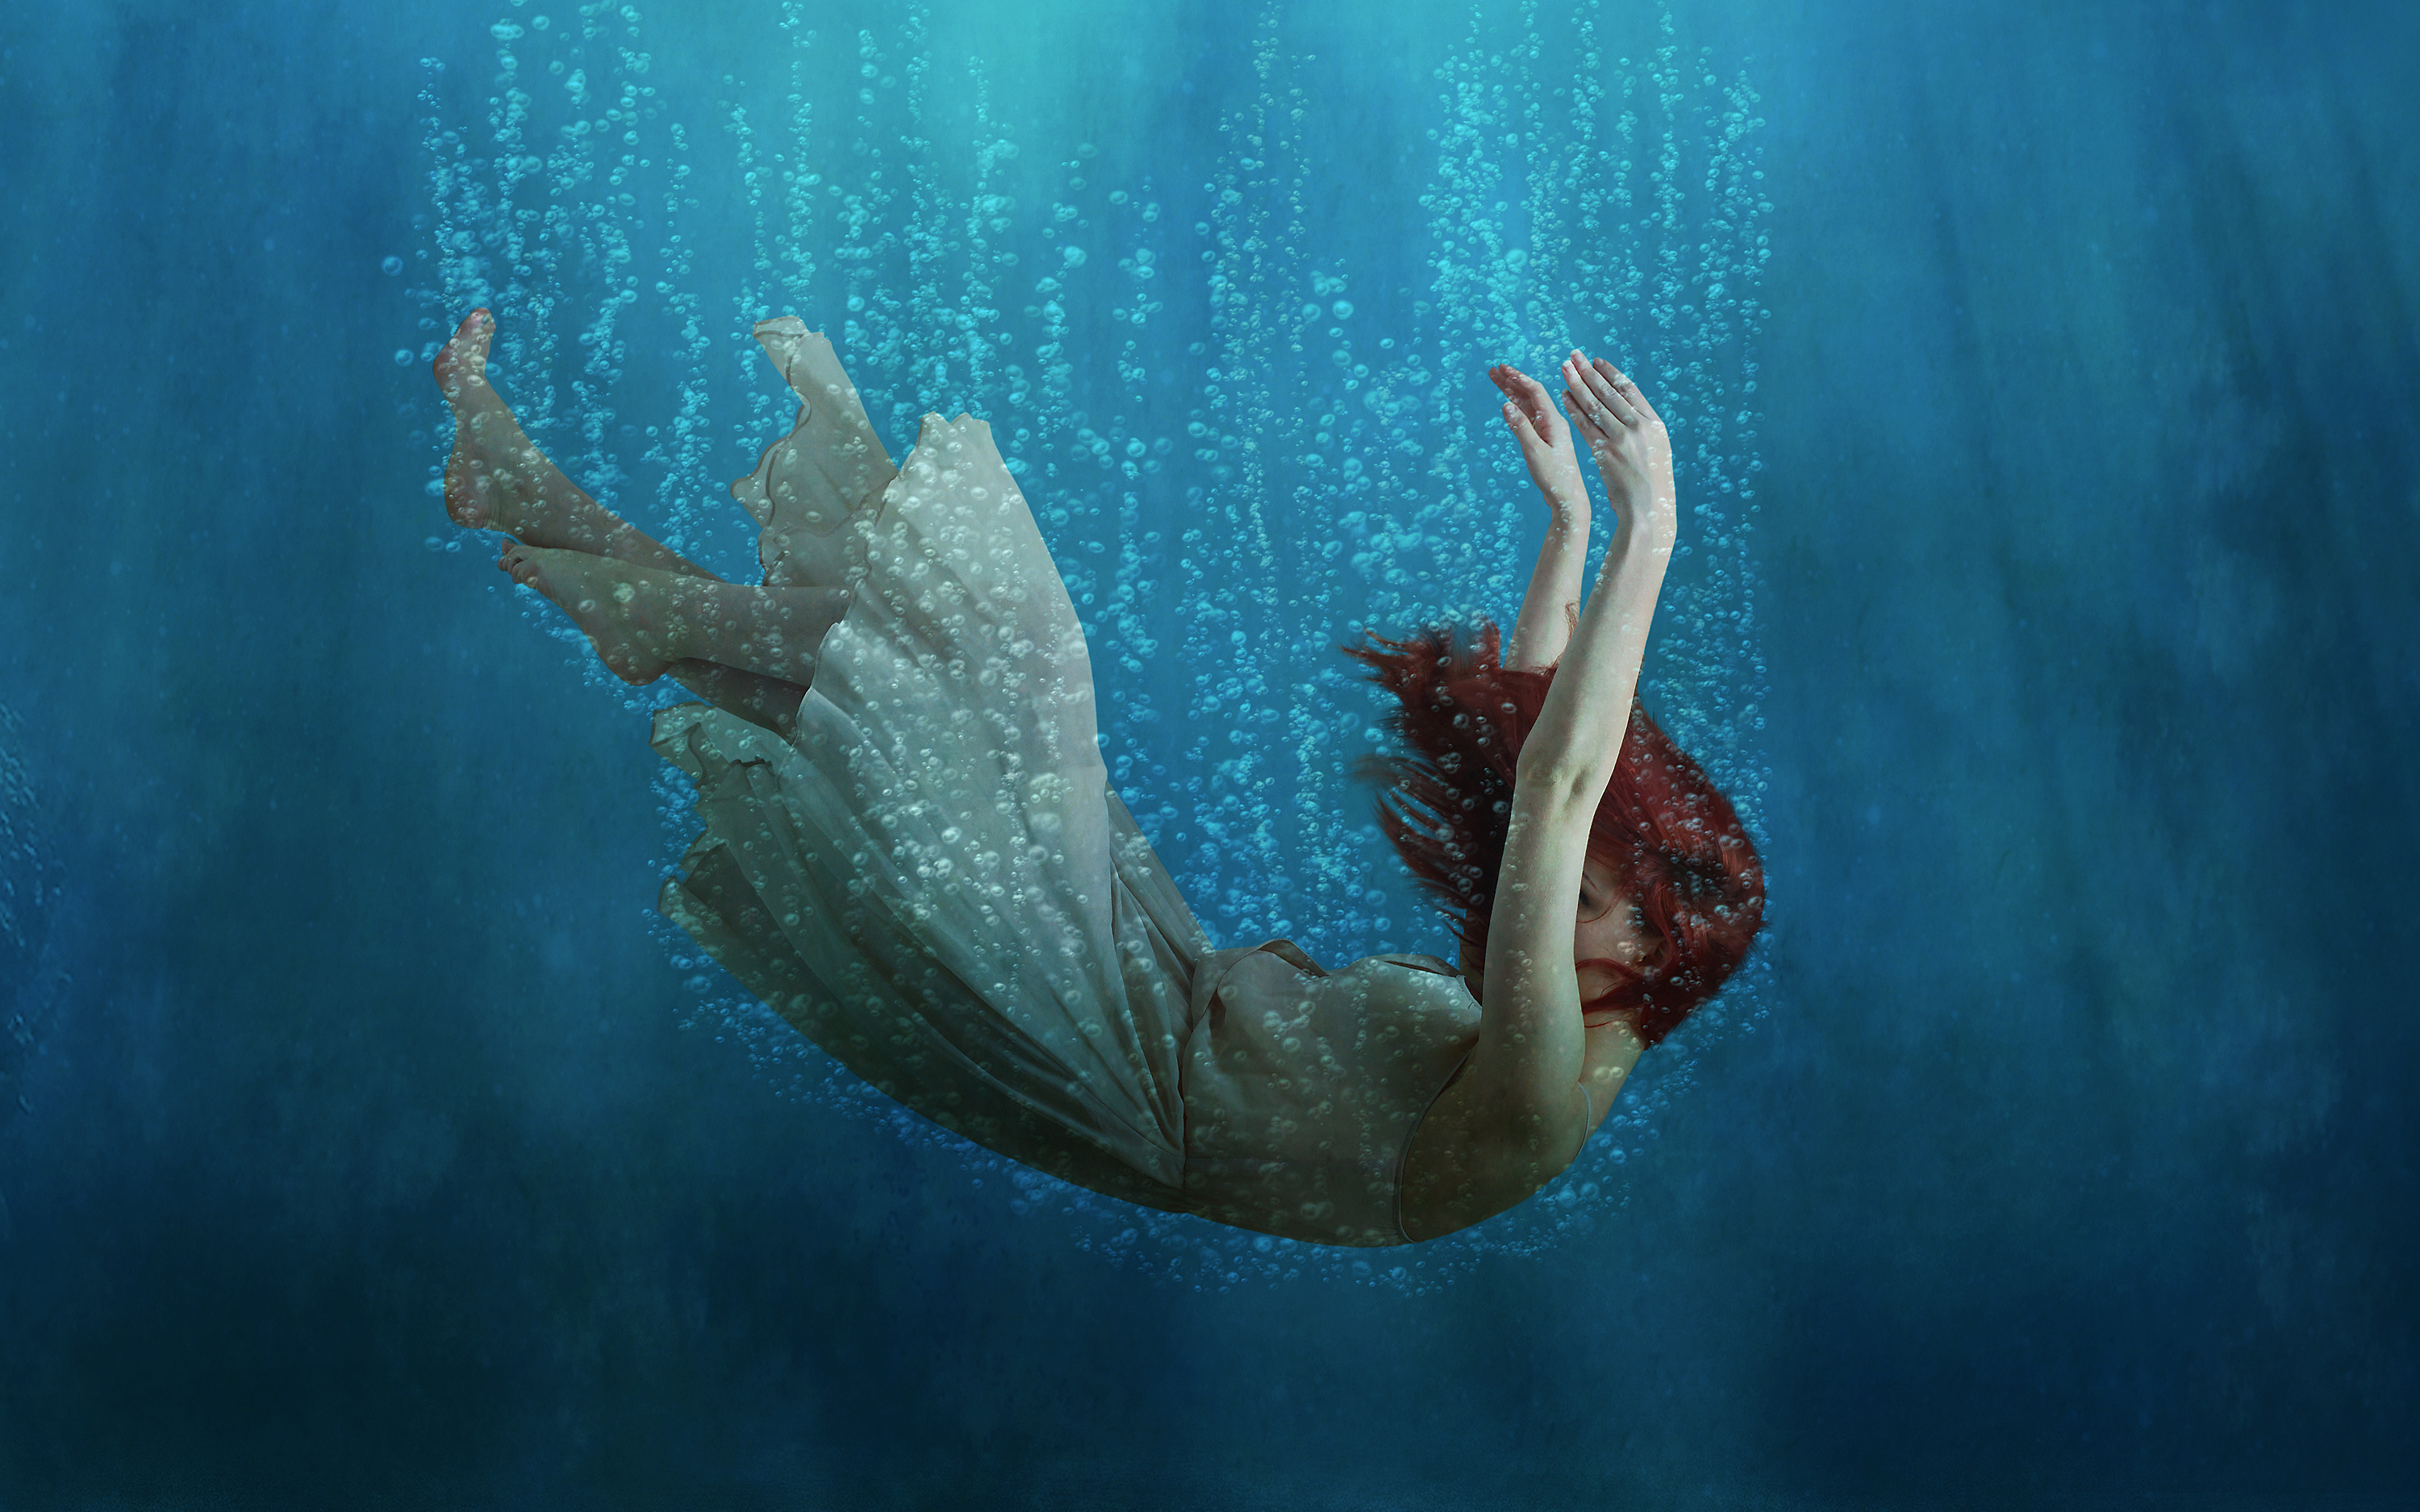 Underwater Girl Dream